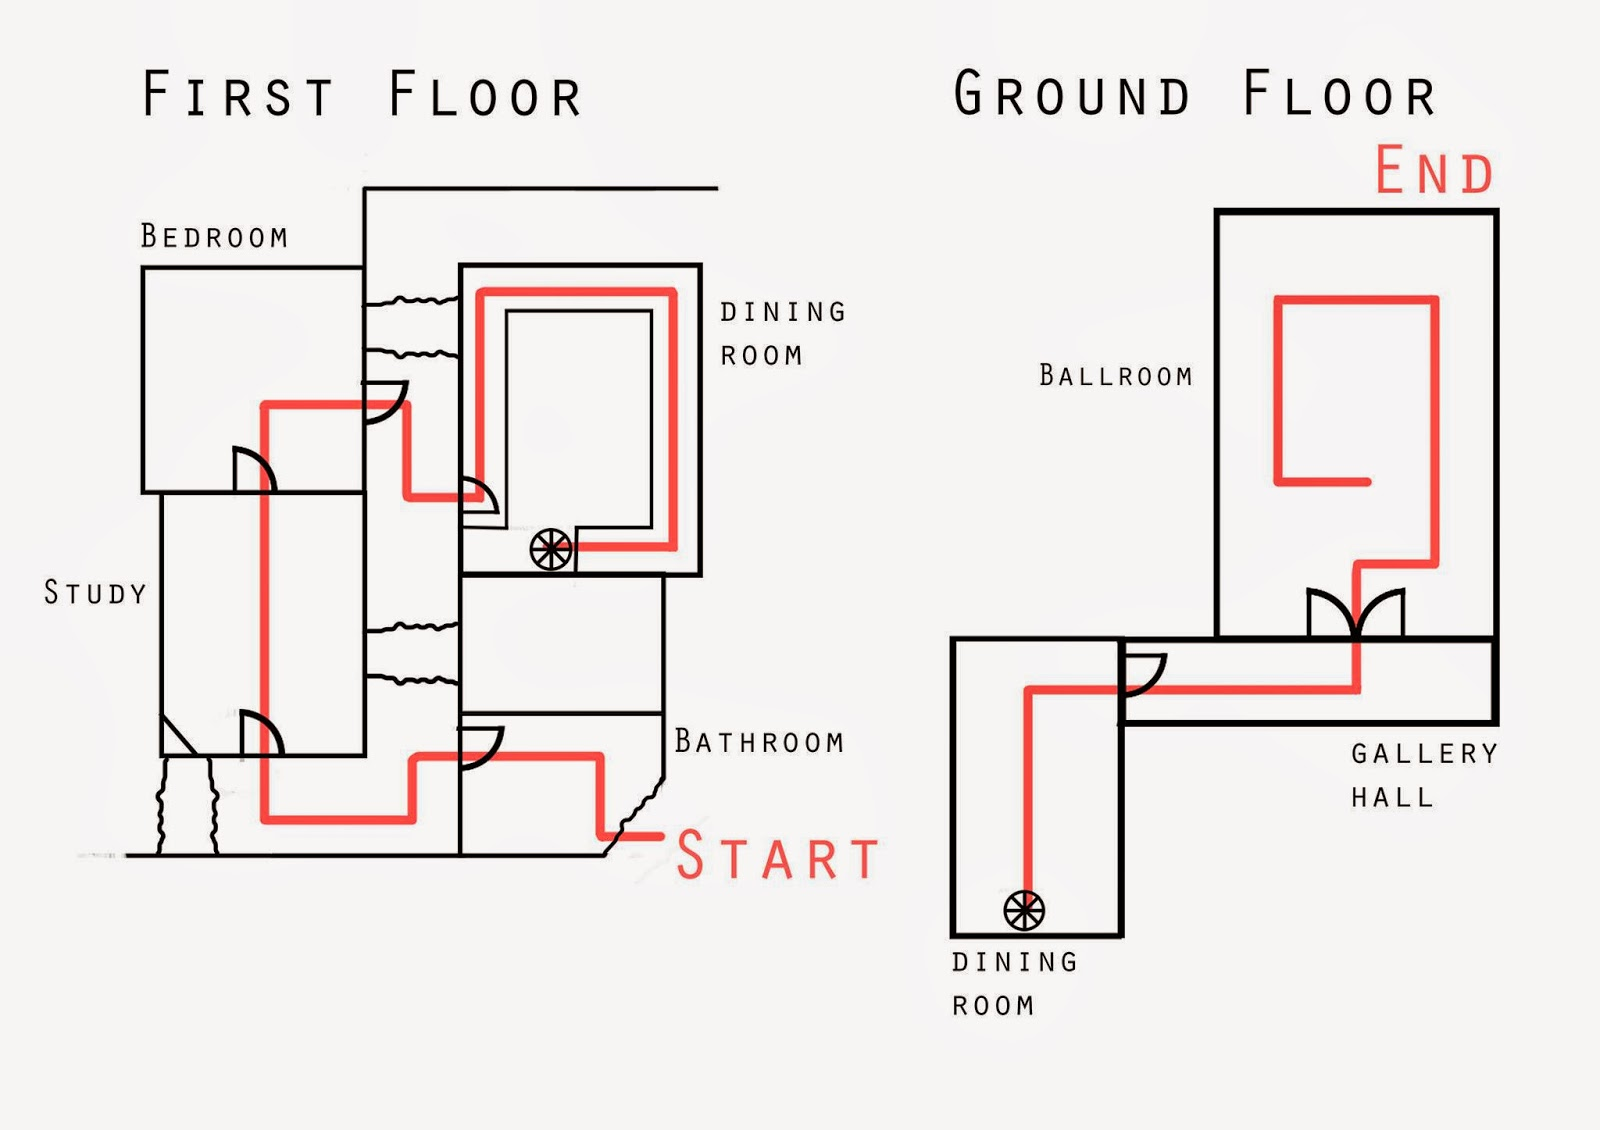 simple flow plan and player flow throughout the level this was to help us understand how we would lead the player through each room to get to the end